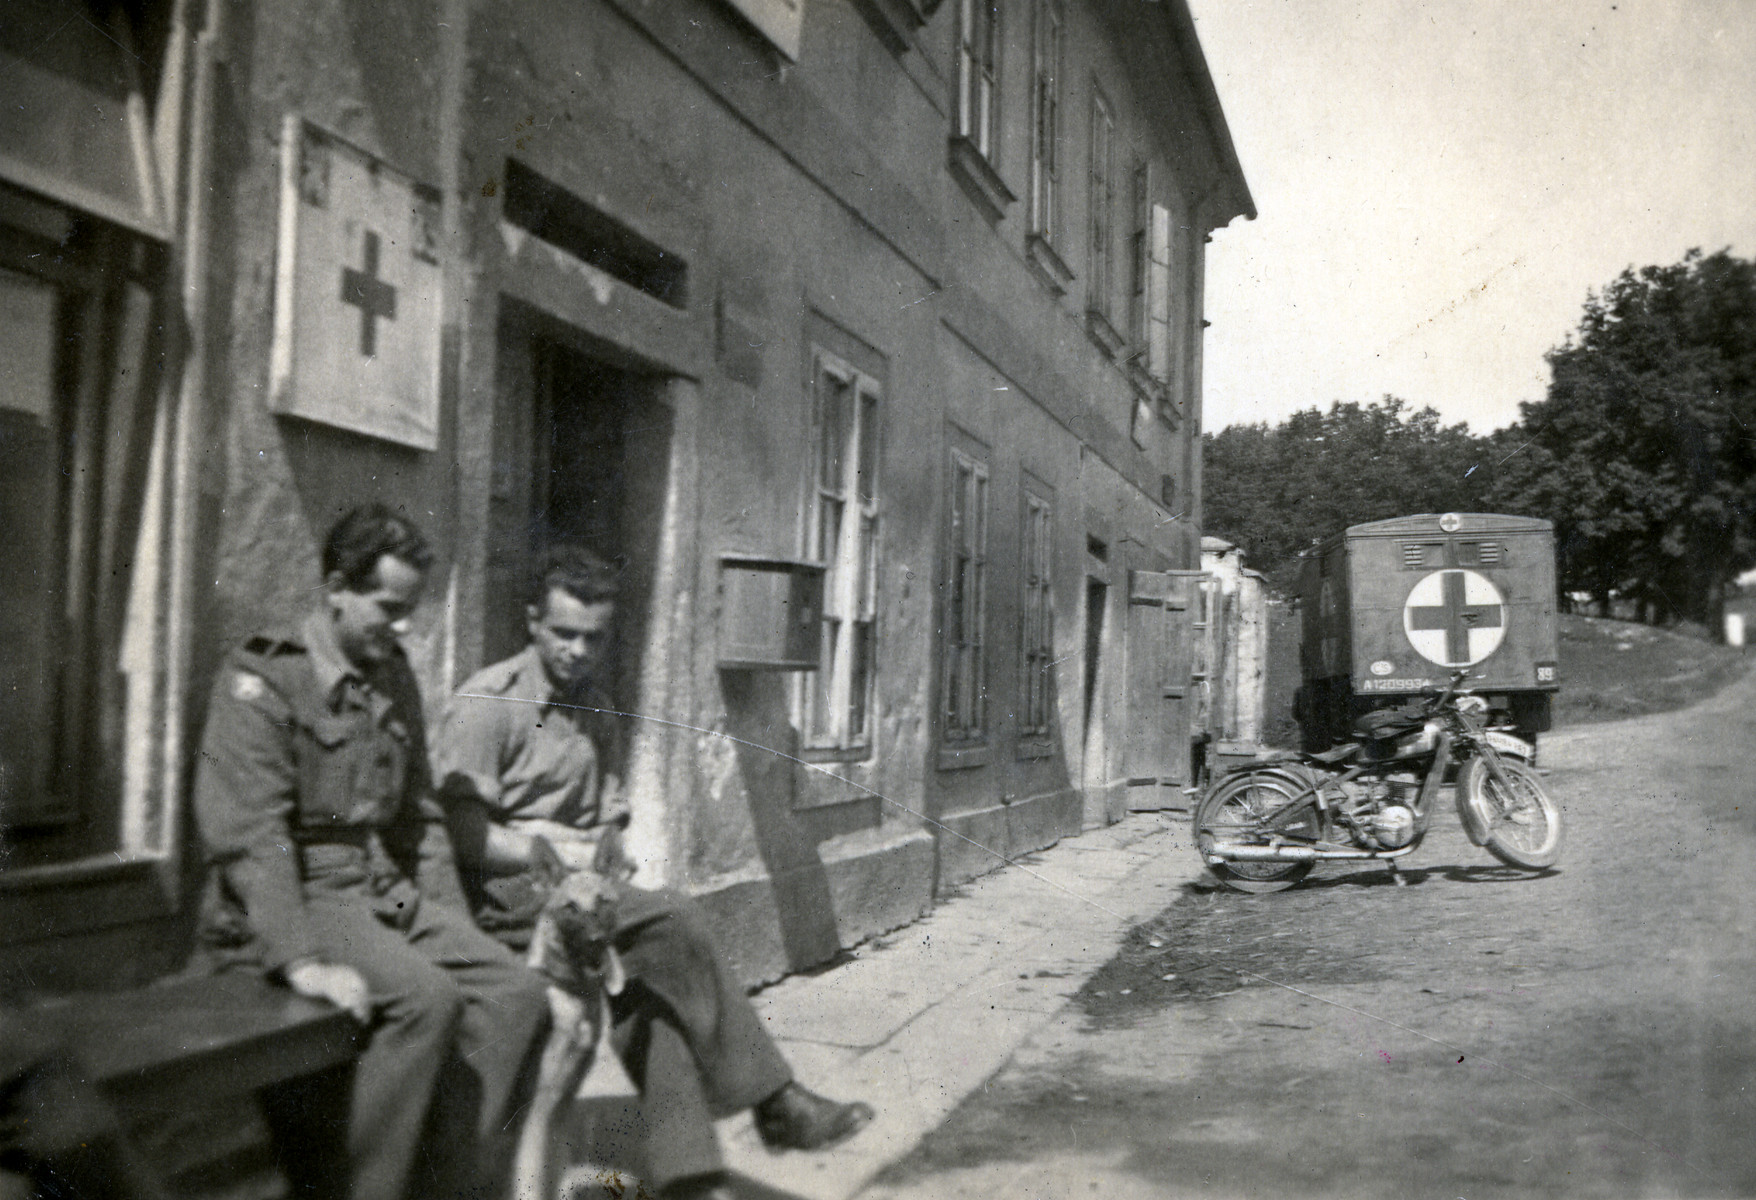 Two men sit outside a Red Cross building (possibly in France).  On the left is Zoltan Yakubovich wearing his Jewish Brigade uniform.